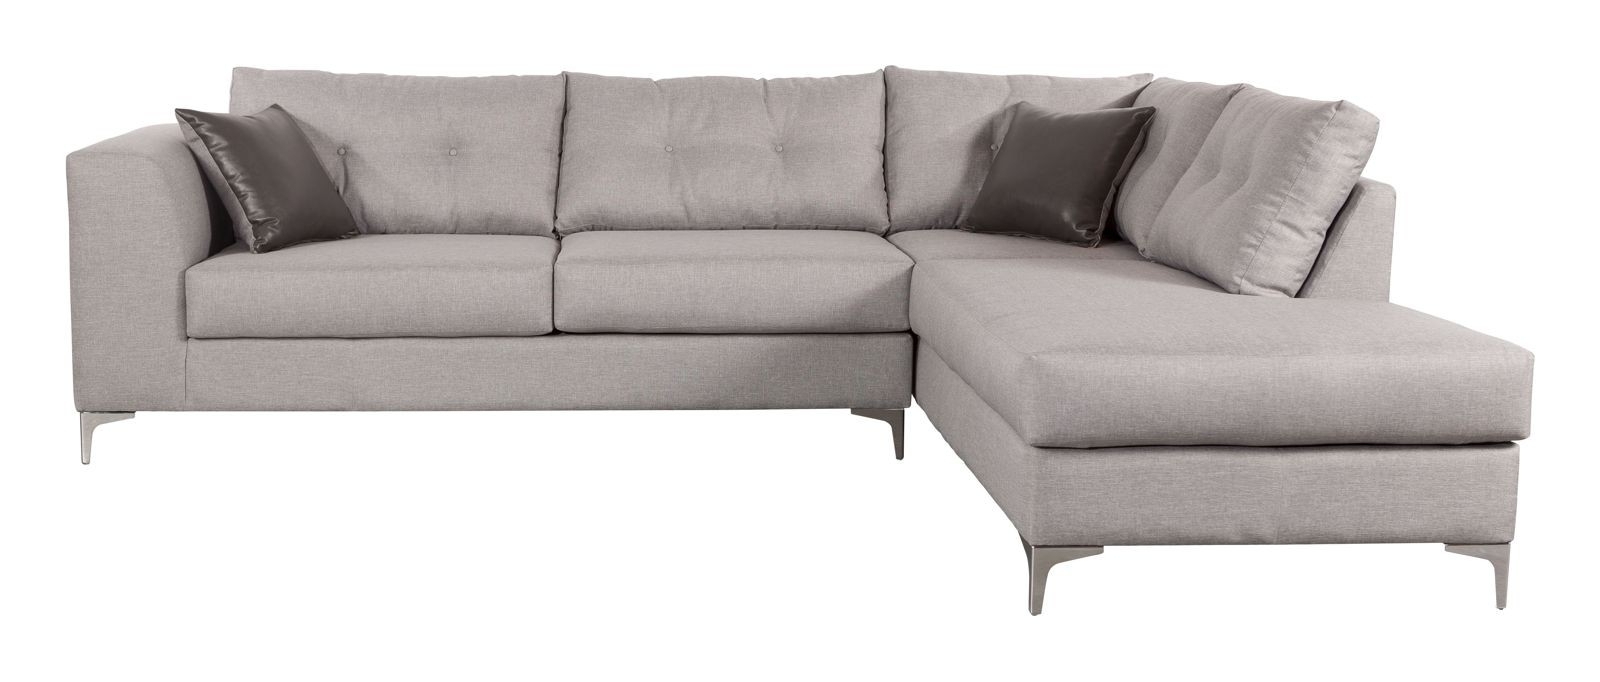 Memphis Sectional Sofazuo Modern | Modern Sectionals | Cressina In Memphis Sectional Sofas (Image 7 of 10)